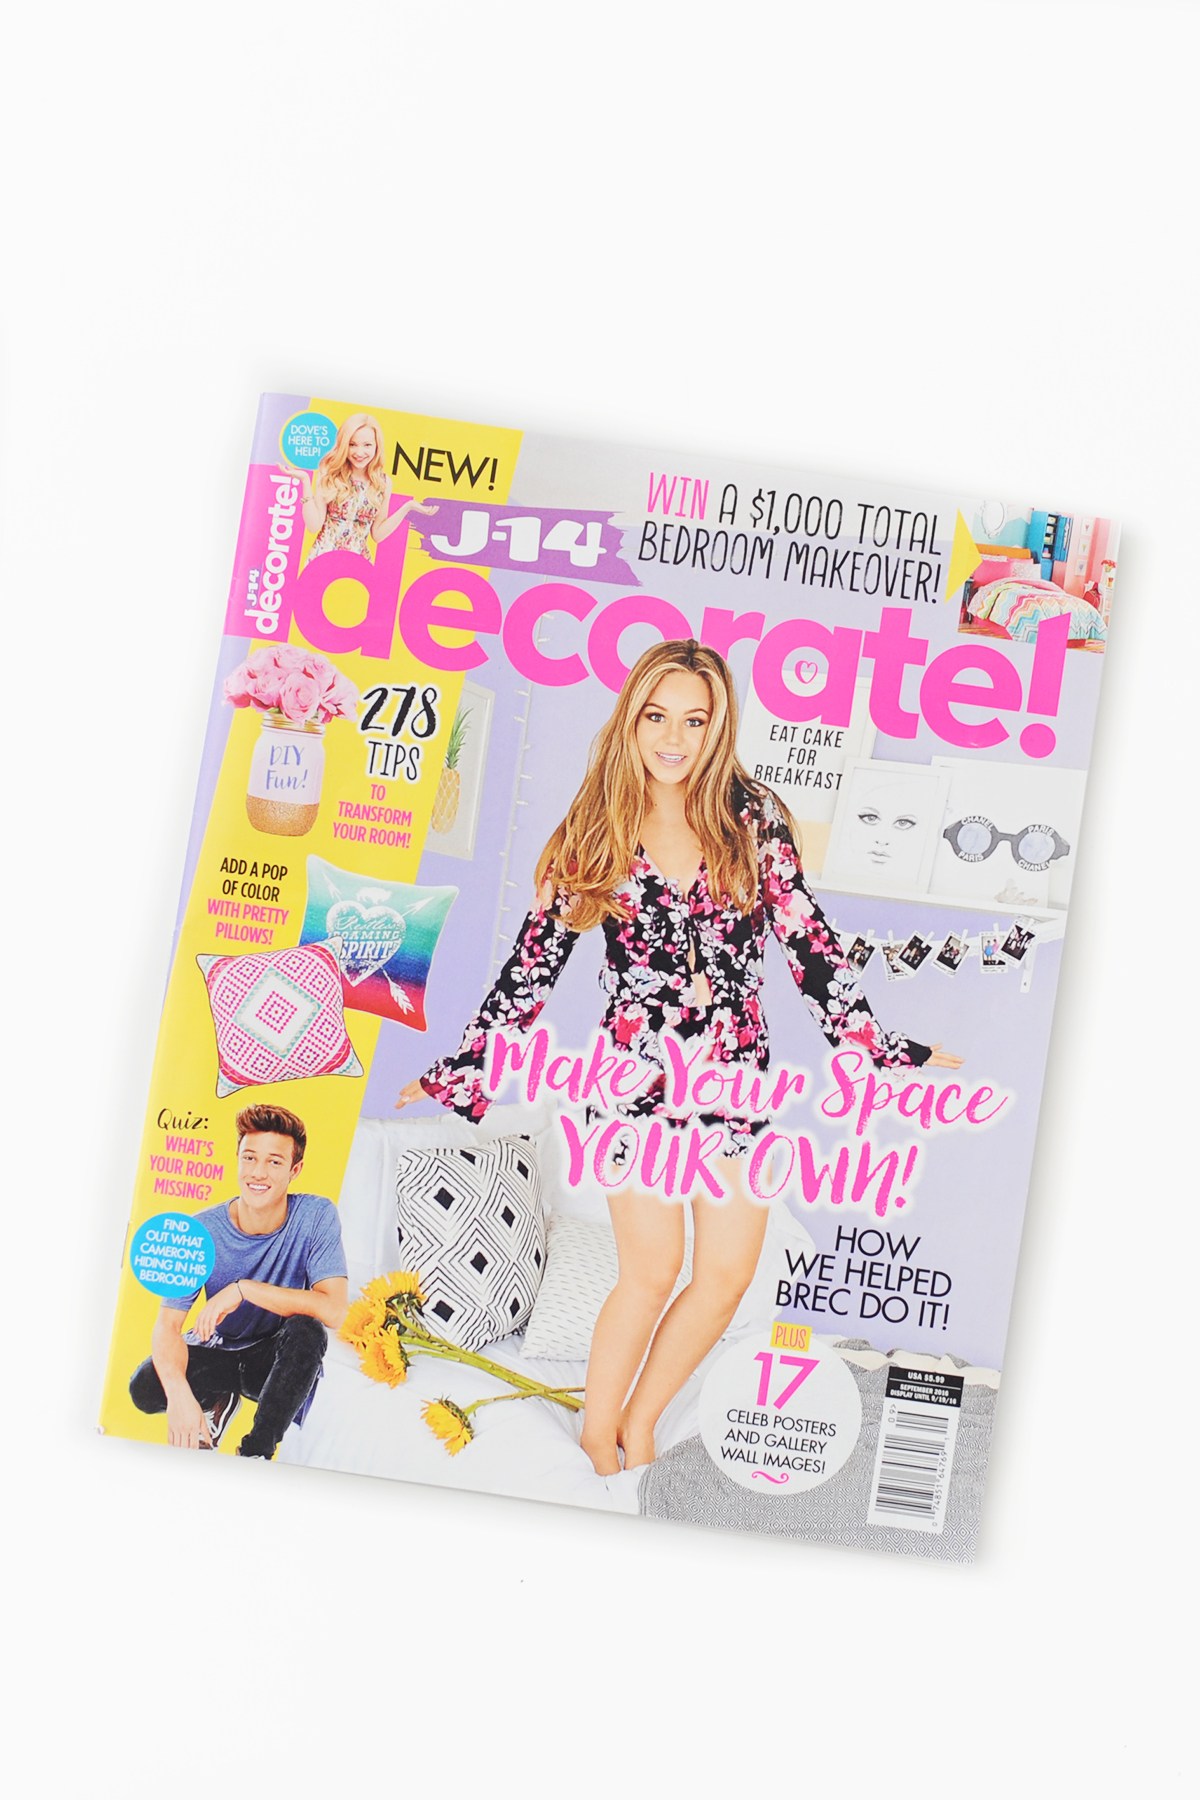 An exciting week at our house: J-14 Decorate Magazine Feature